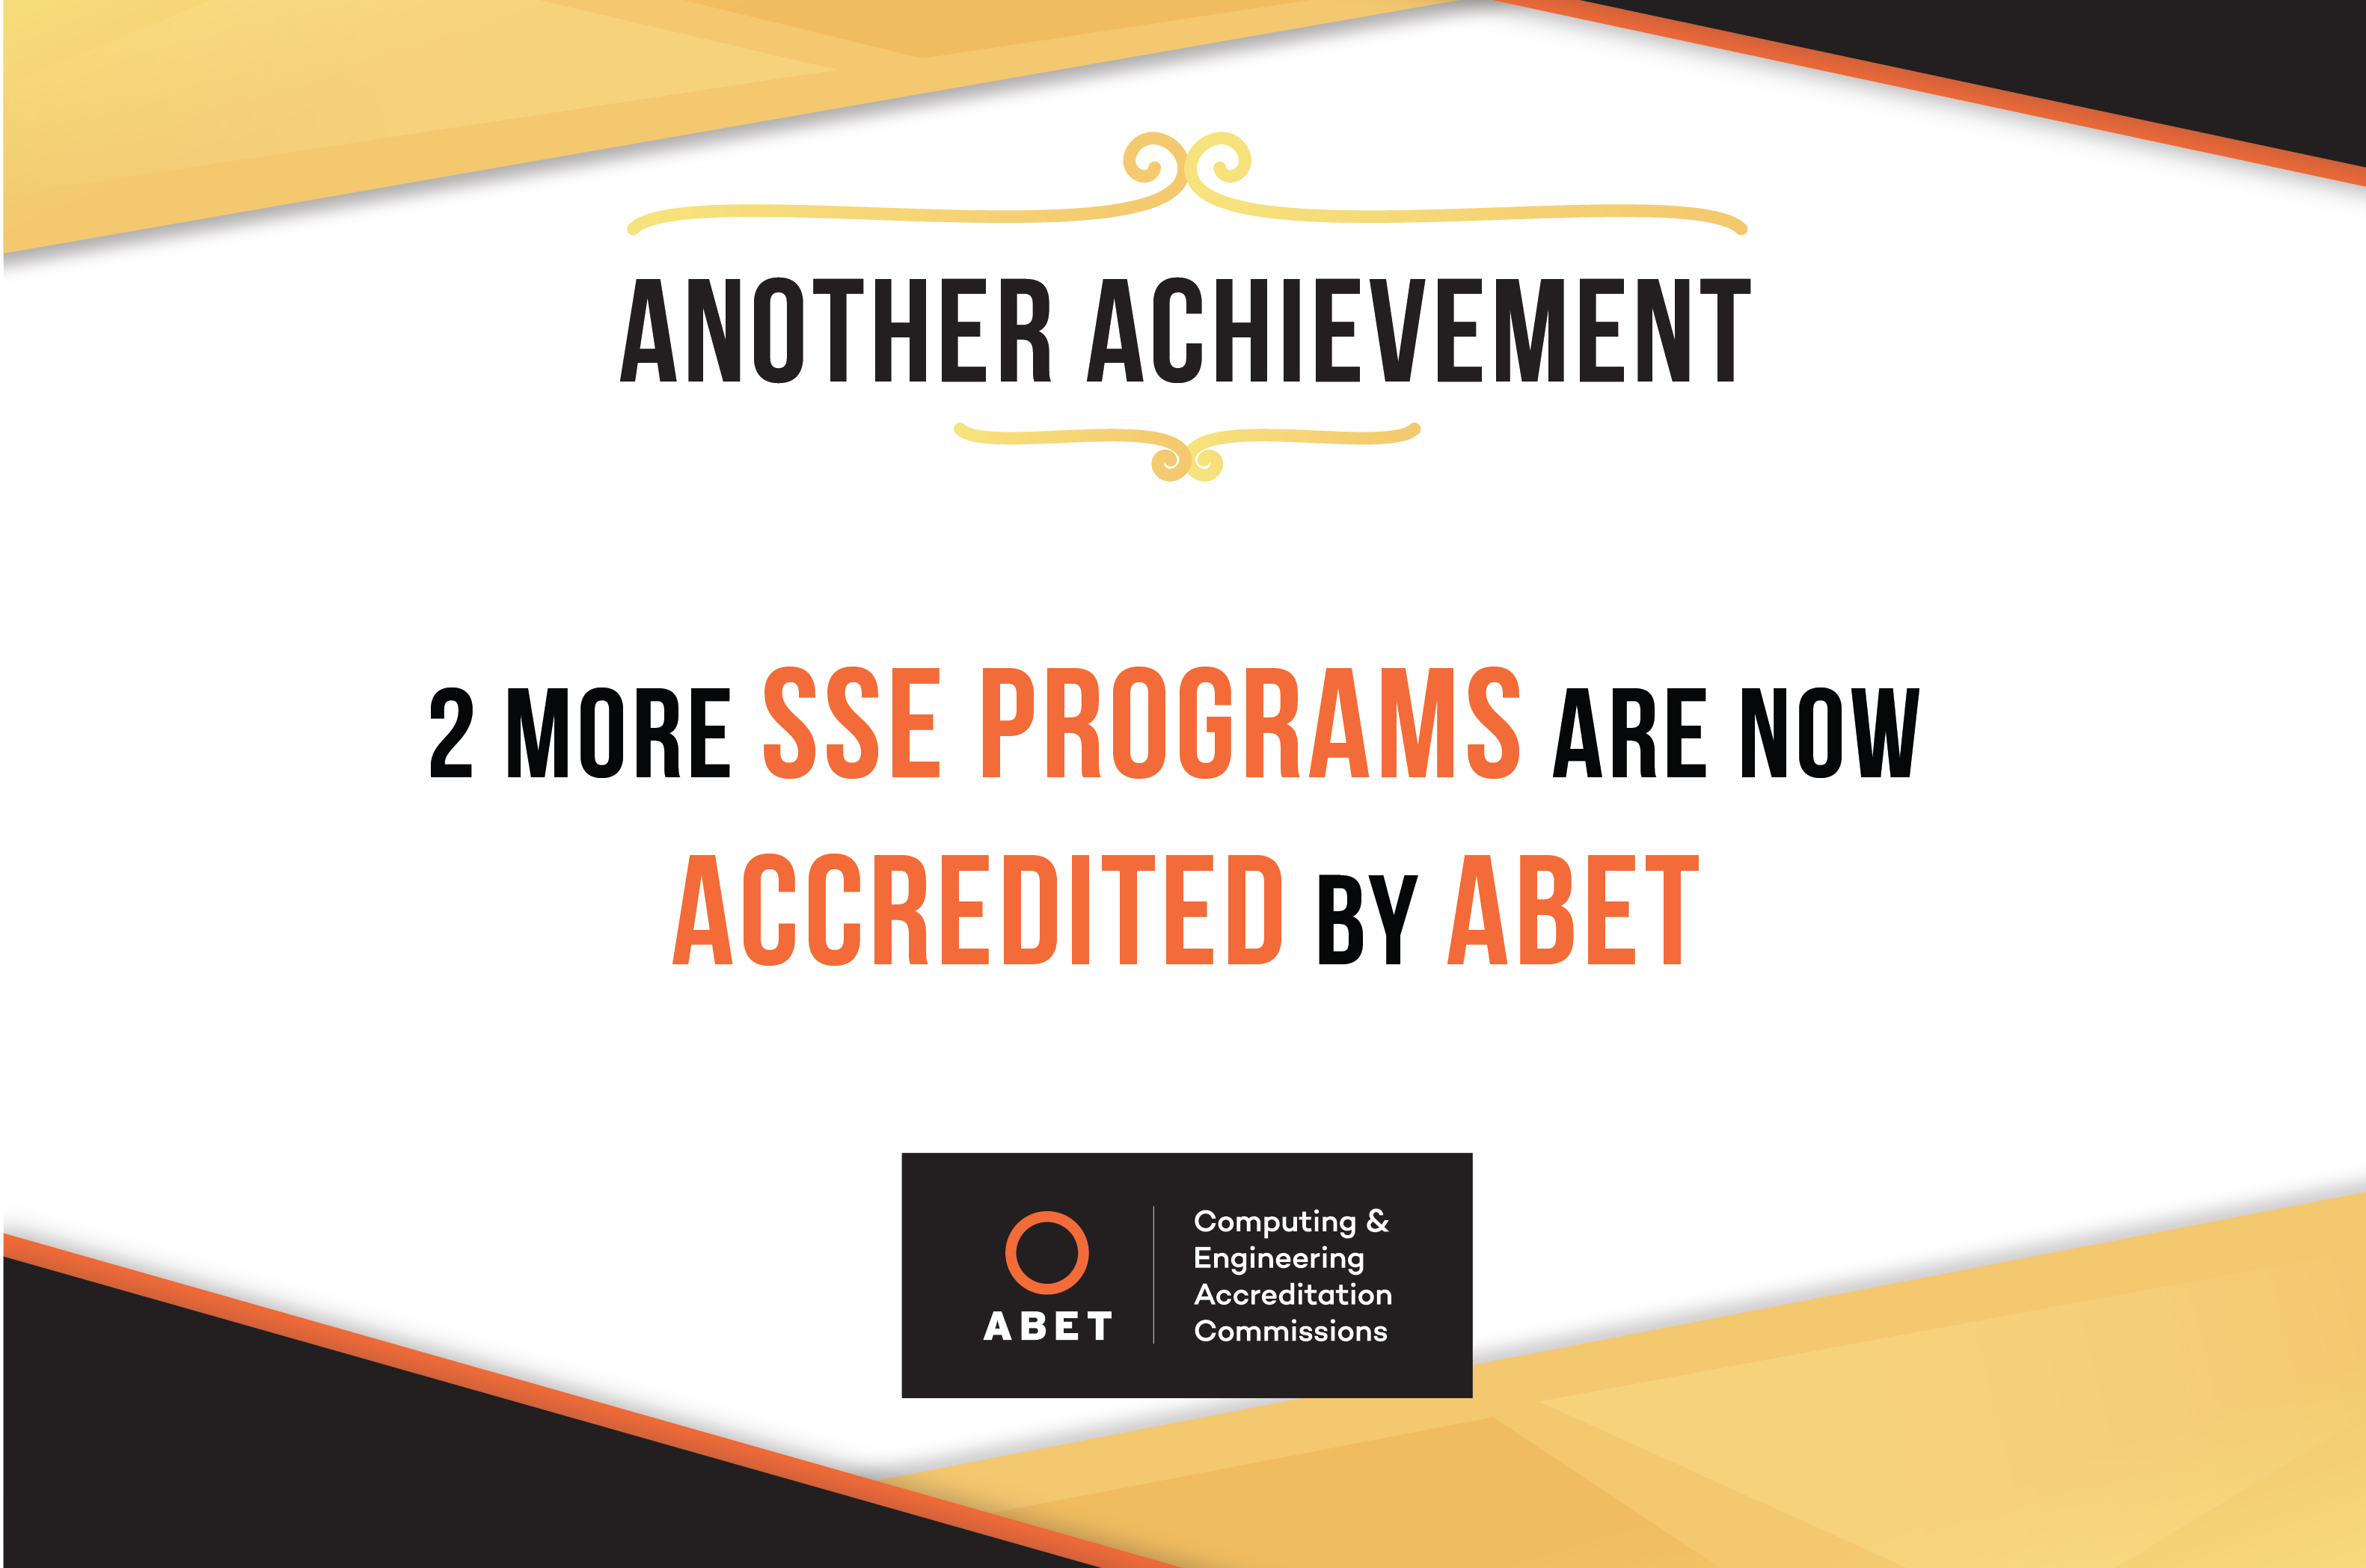 Two more SSE Programs Accredited by ABET